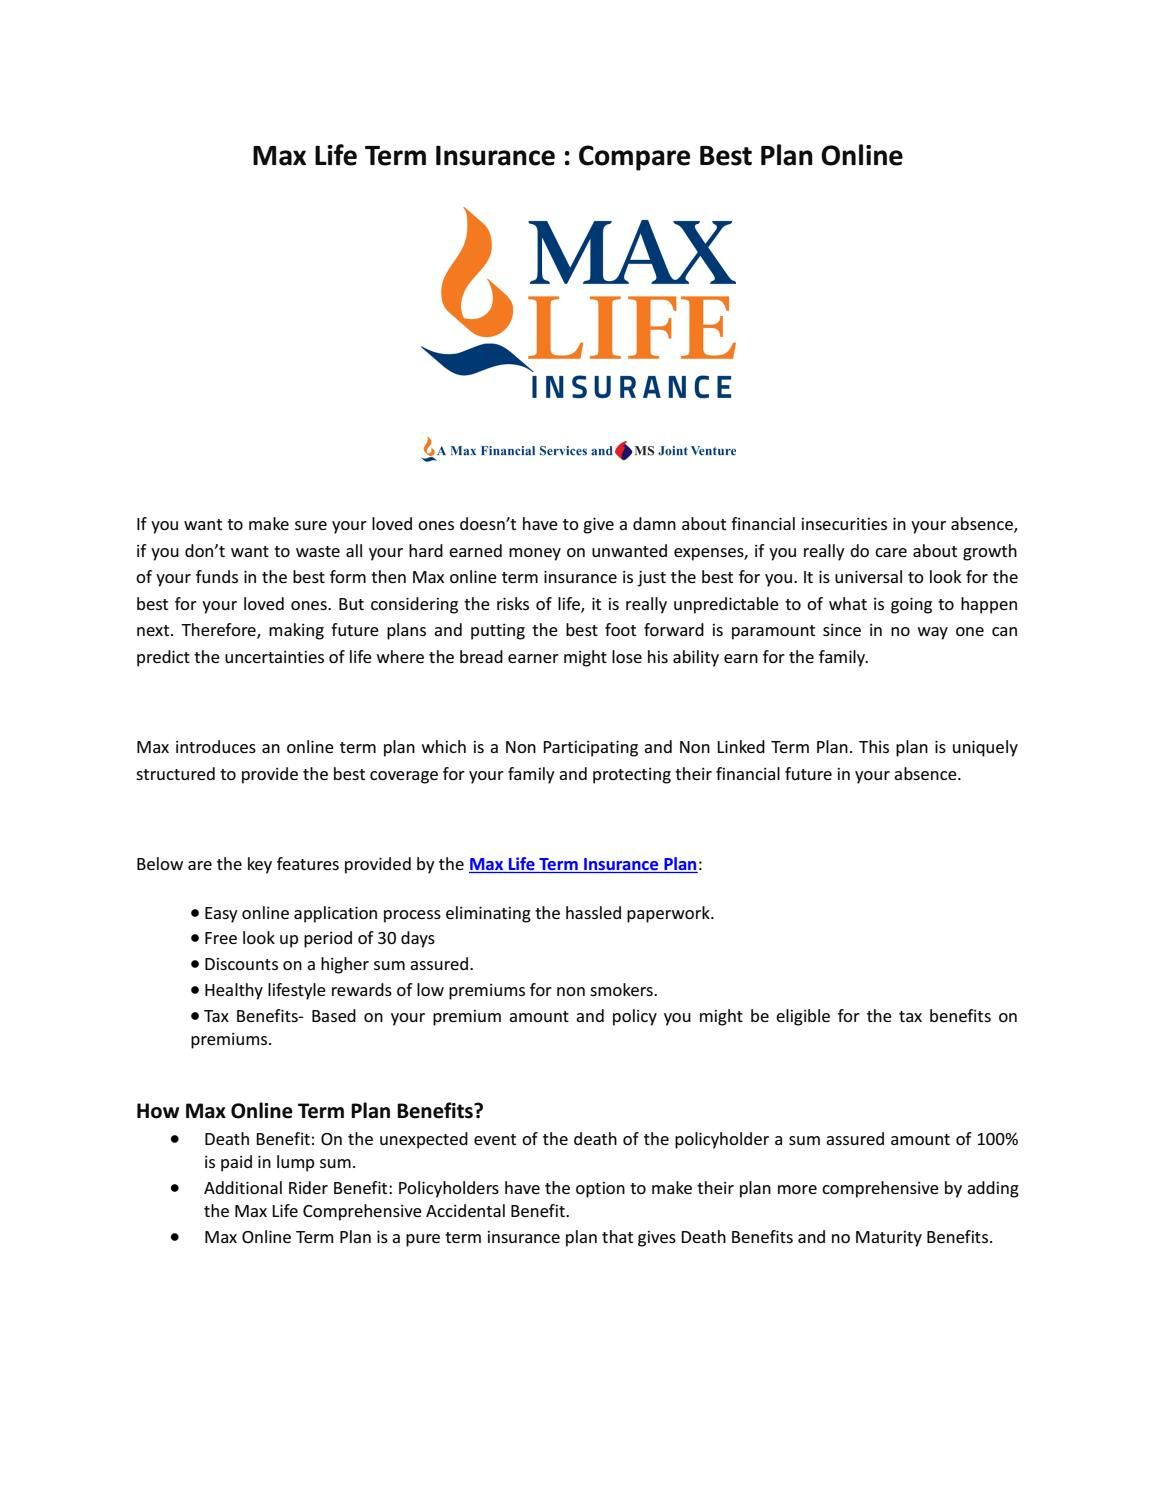 Max Life Term Insurance Plans, Compare Online How to